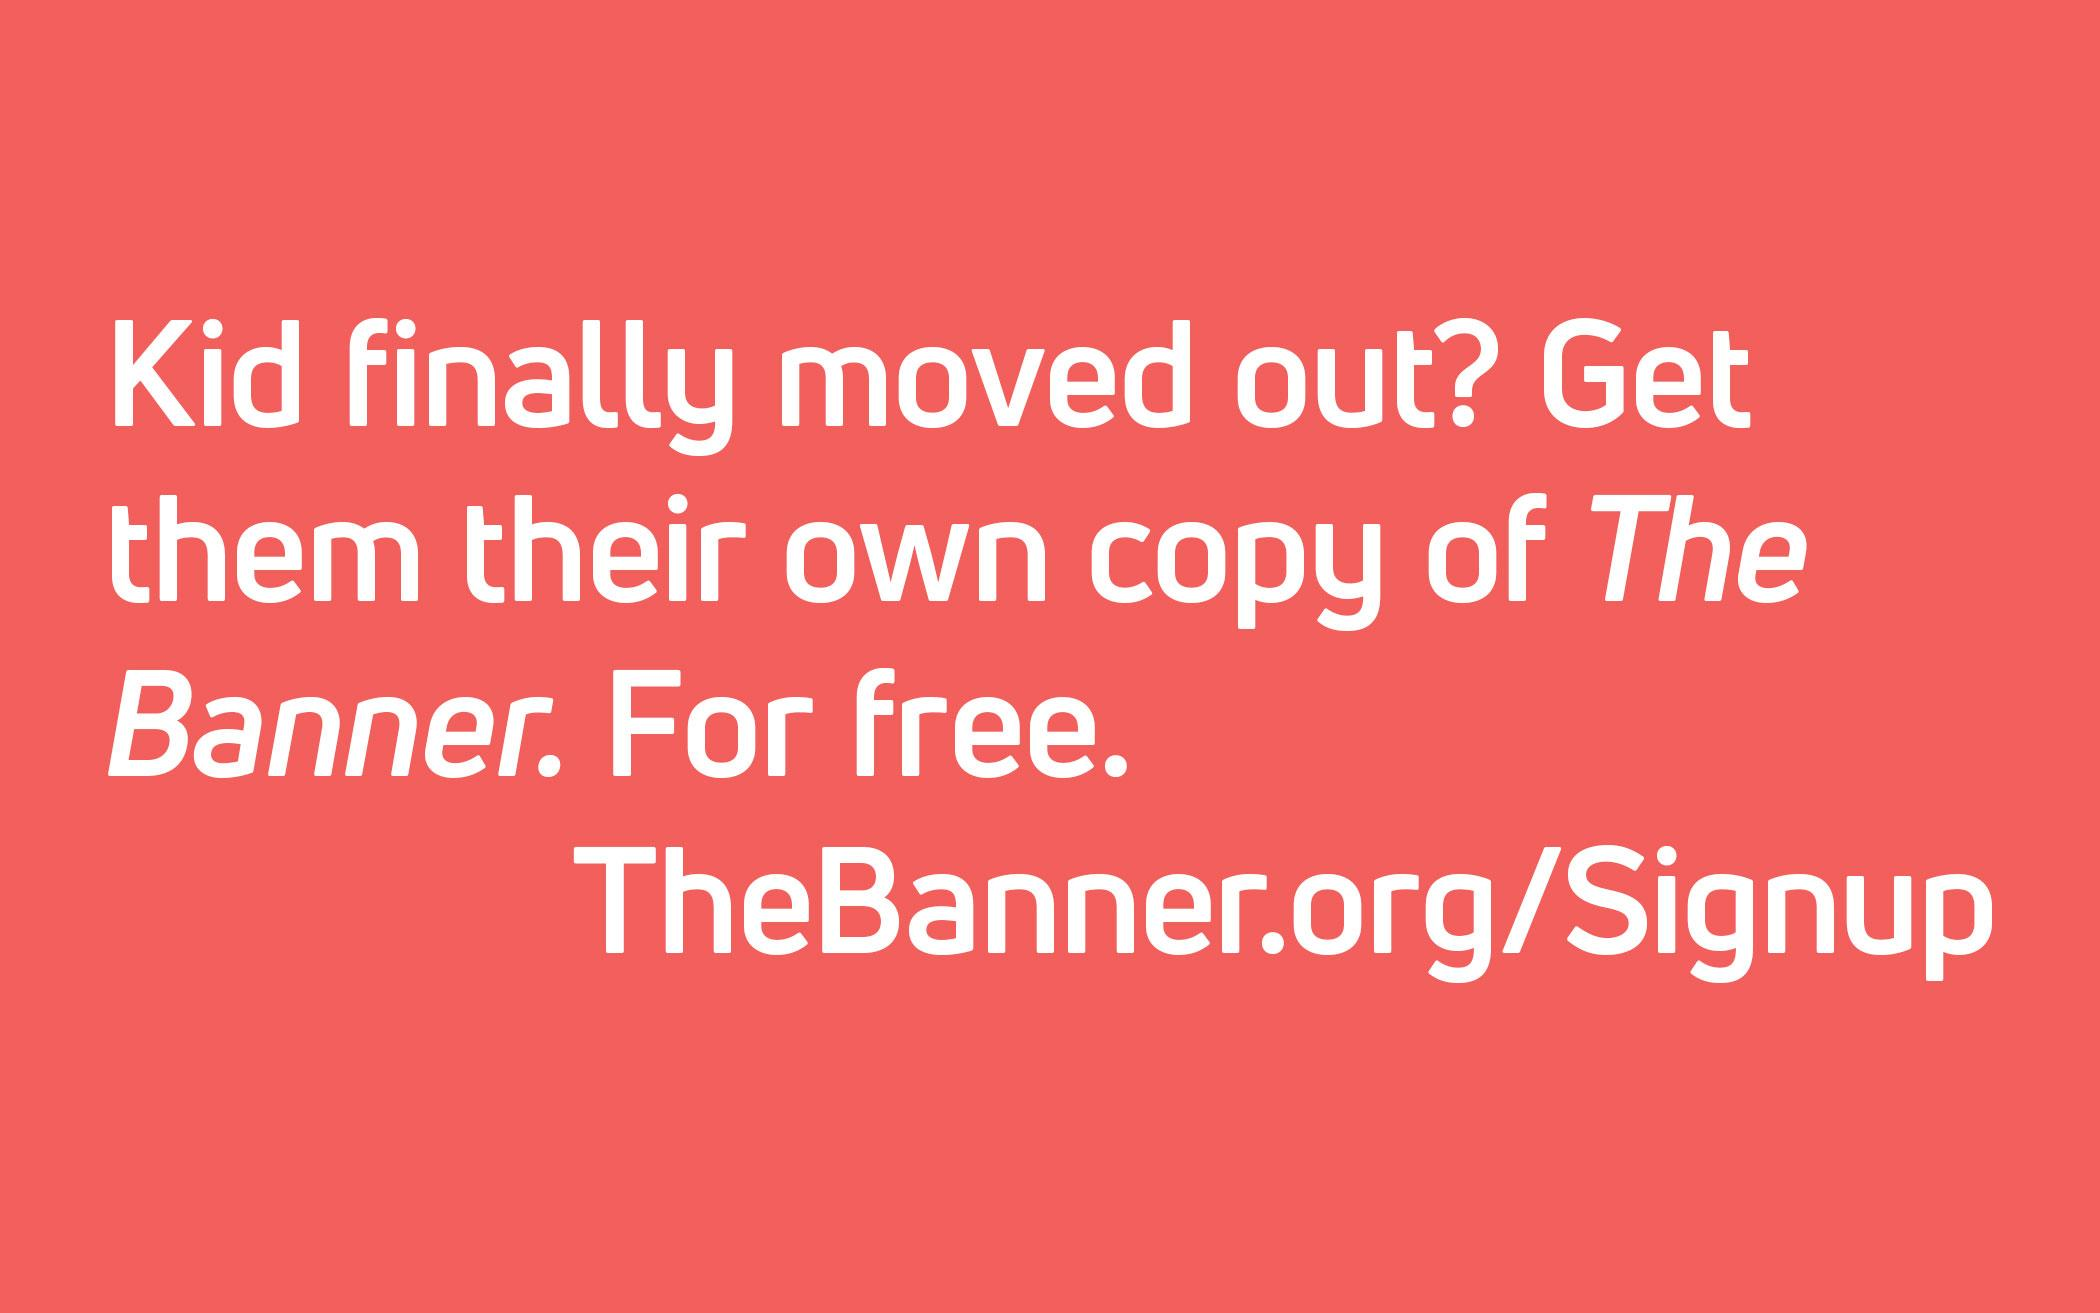 Kid finally moved out? Get them their own copy of The Banner. For free. TheBanner.org/Signup